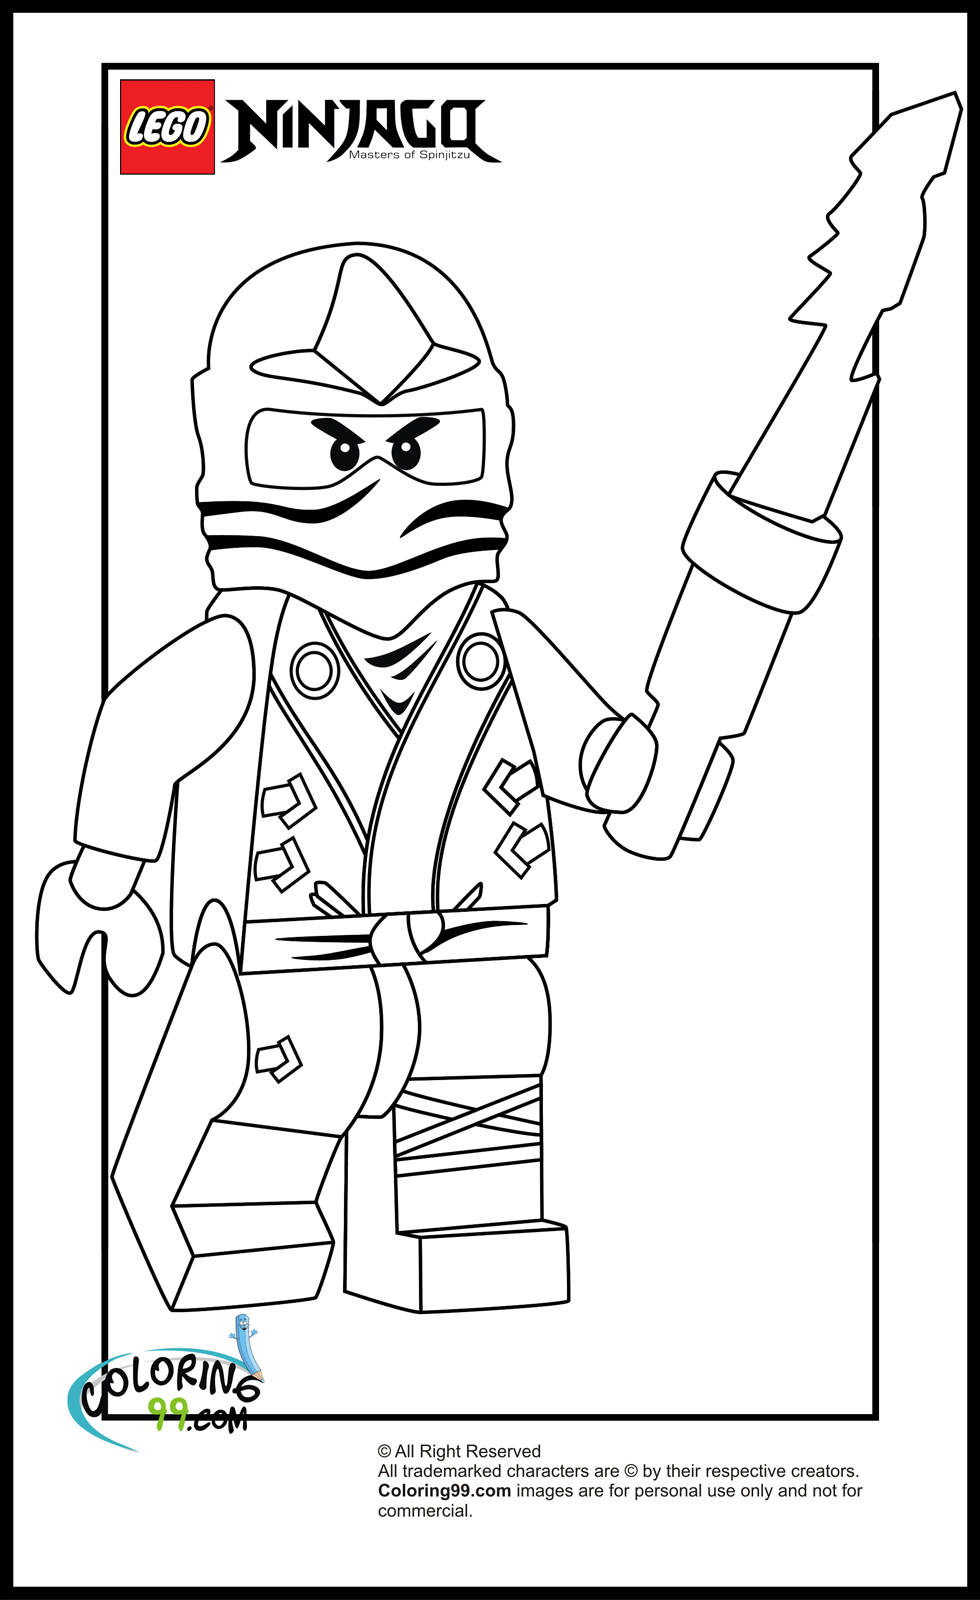 zane ninjago coloring pages - photo#27